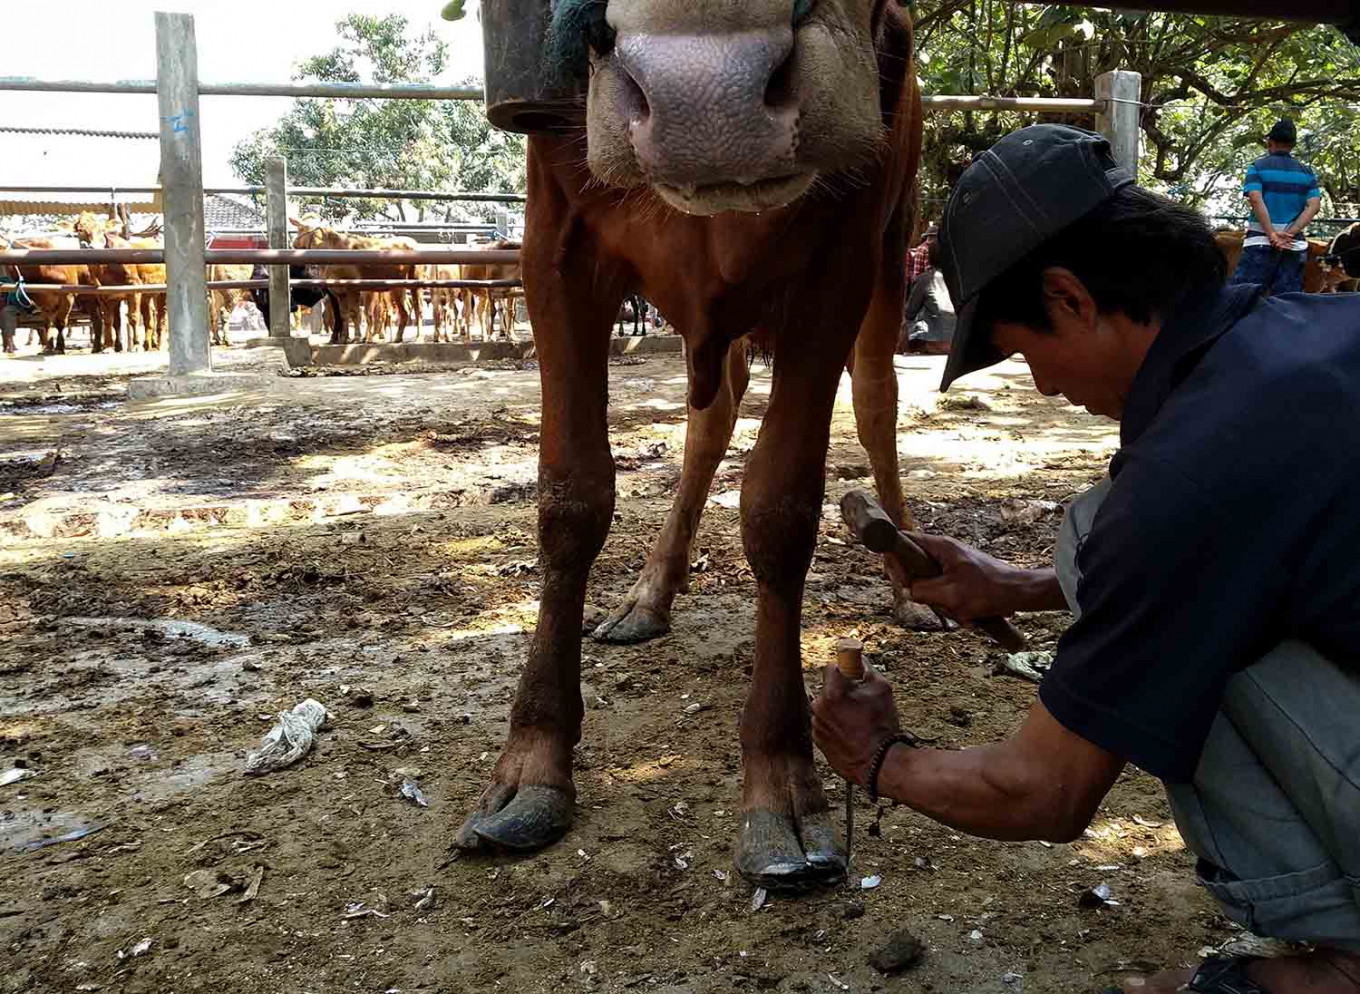 Dwi trims the hoof of a cow using a chisel that is otherwise commonly used by carpenters. JP/Asip Hasani